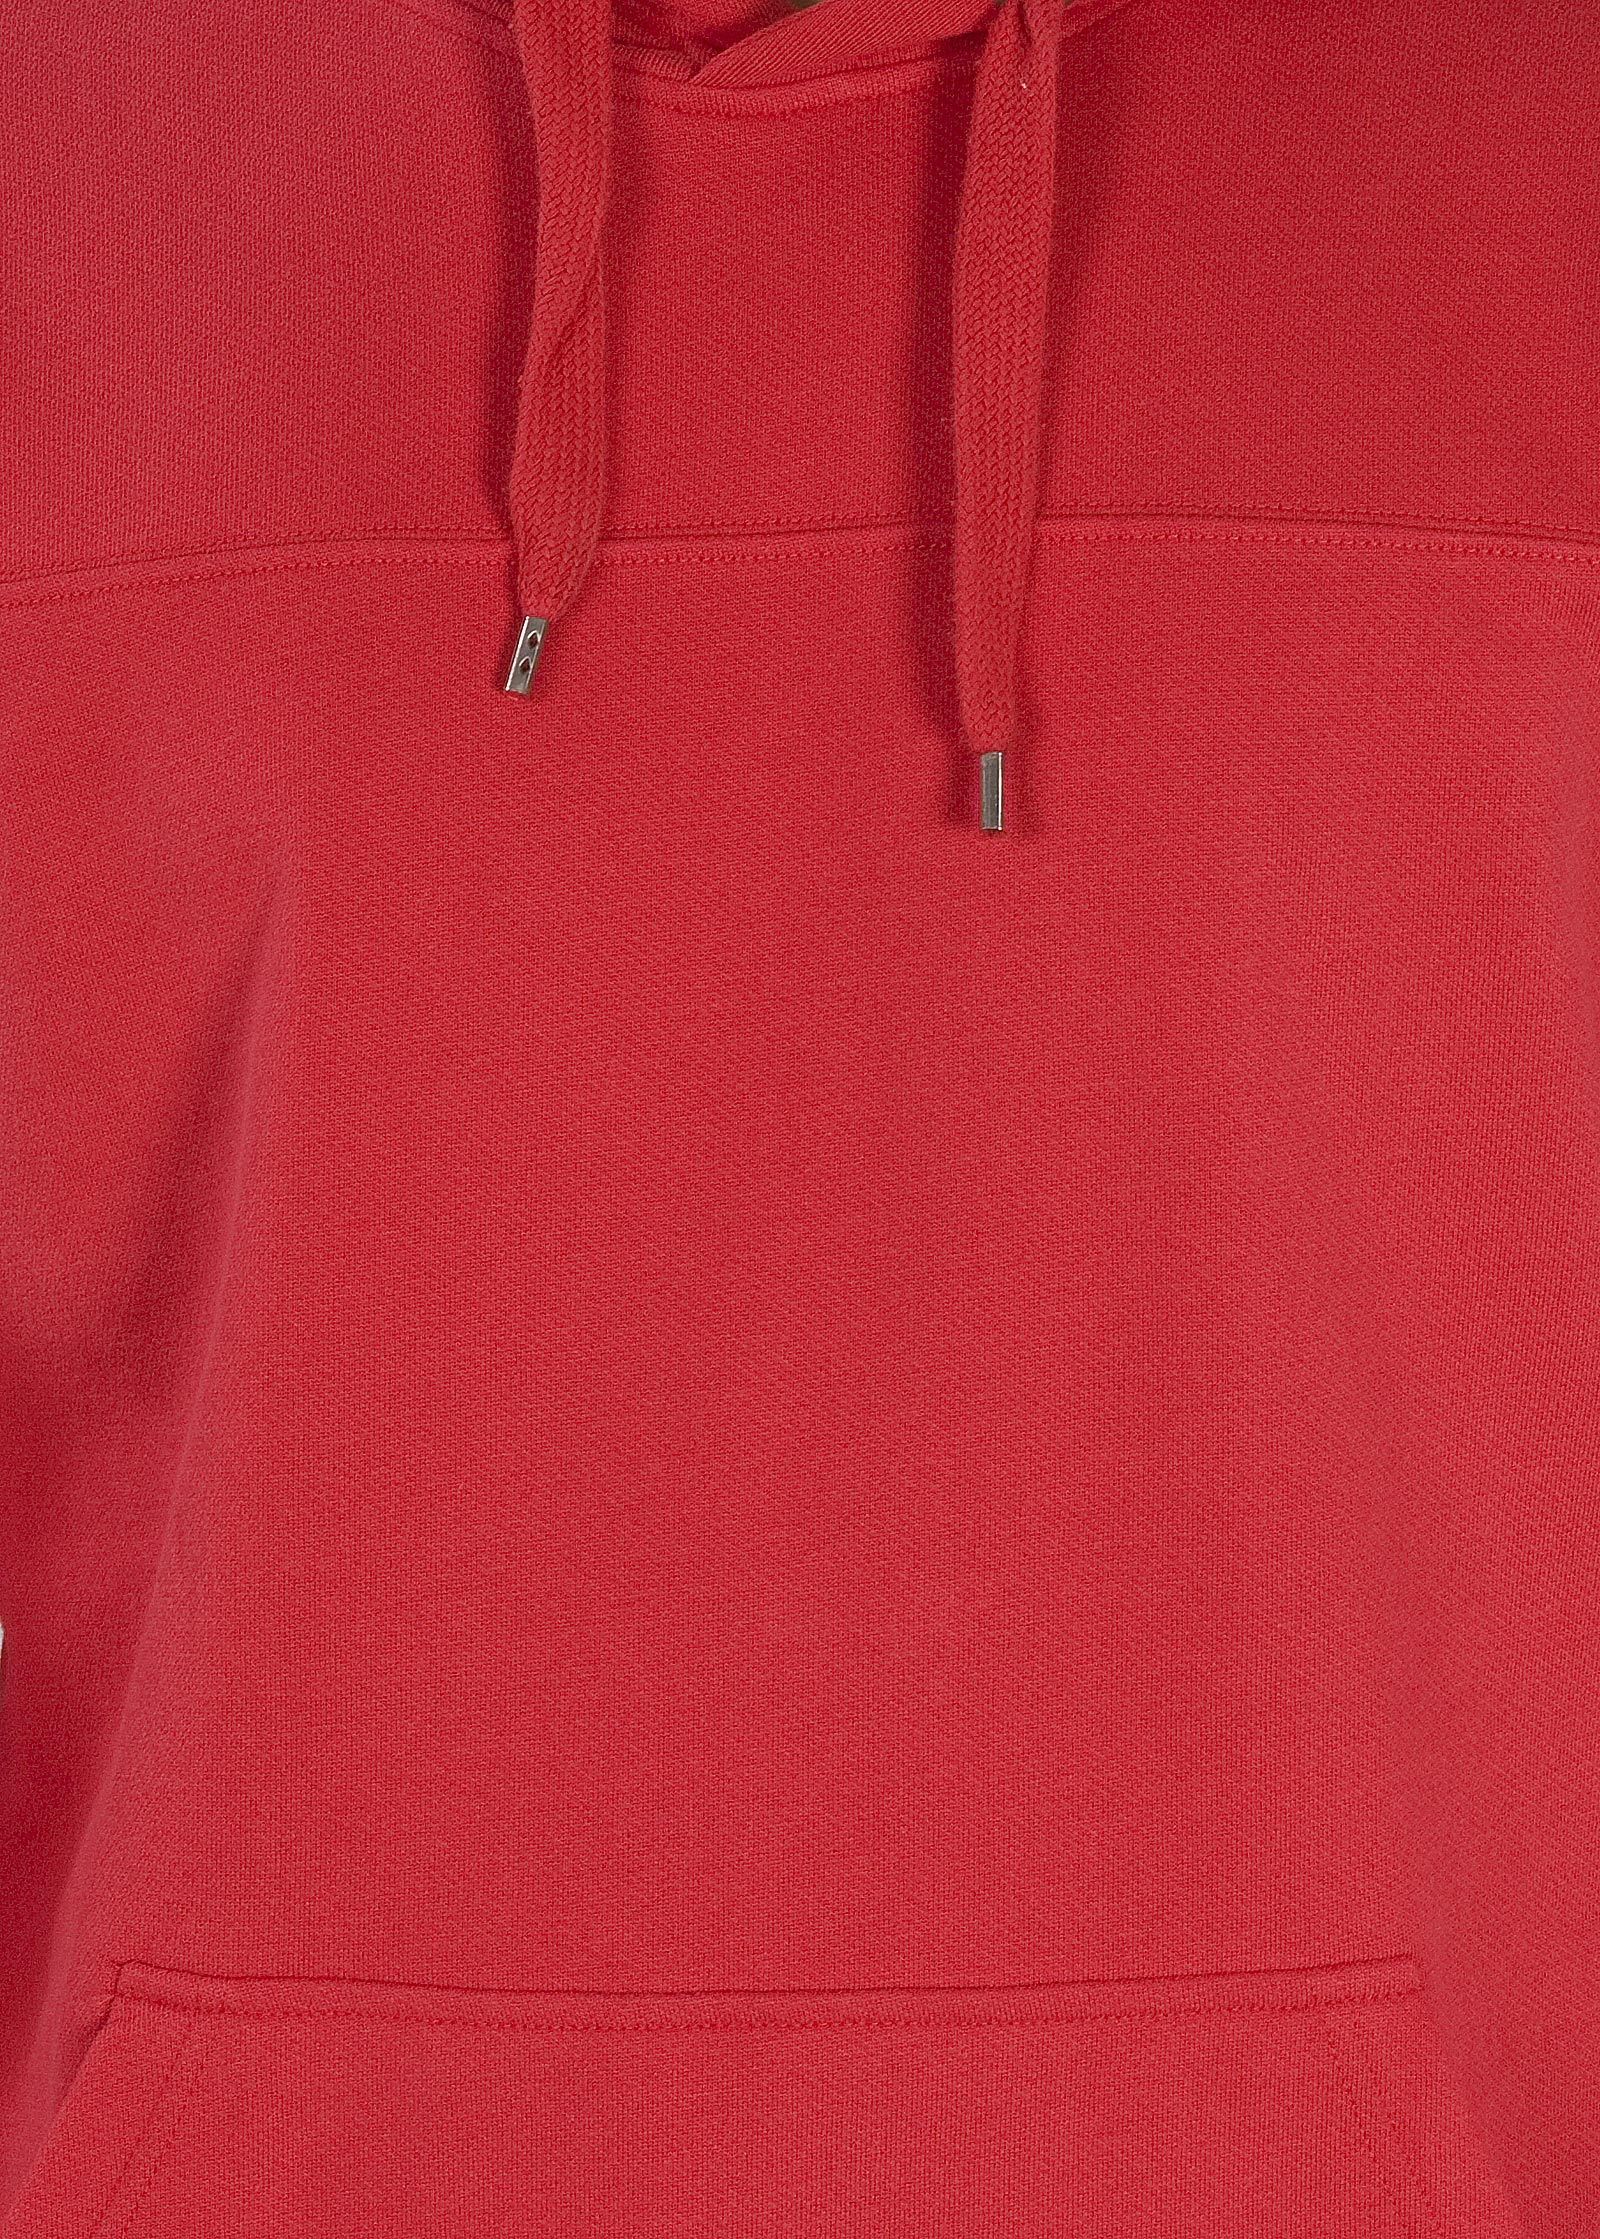 Lee® Jeans Hoody - Bright Red - elements